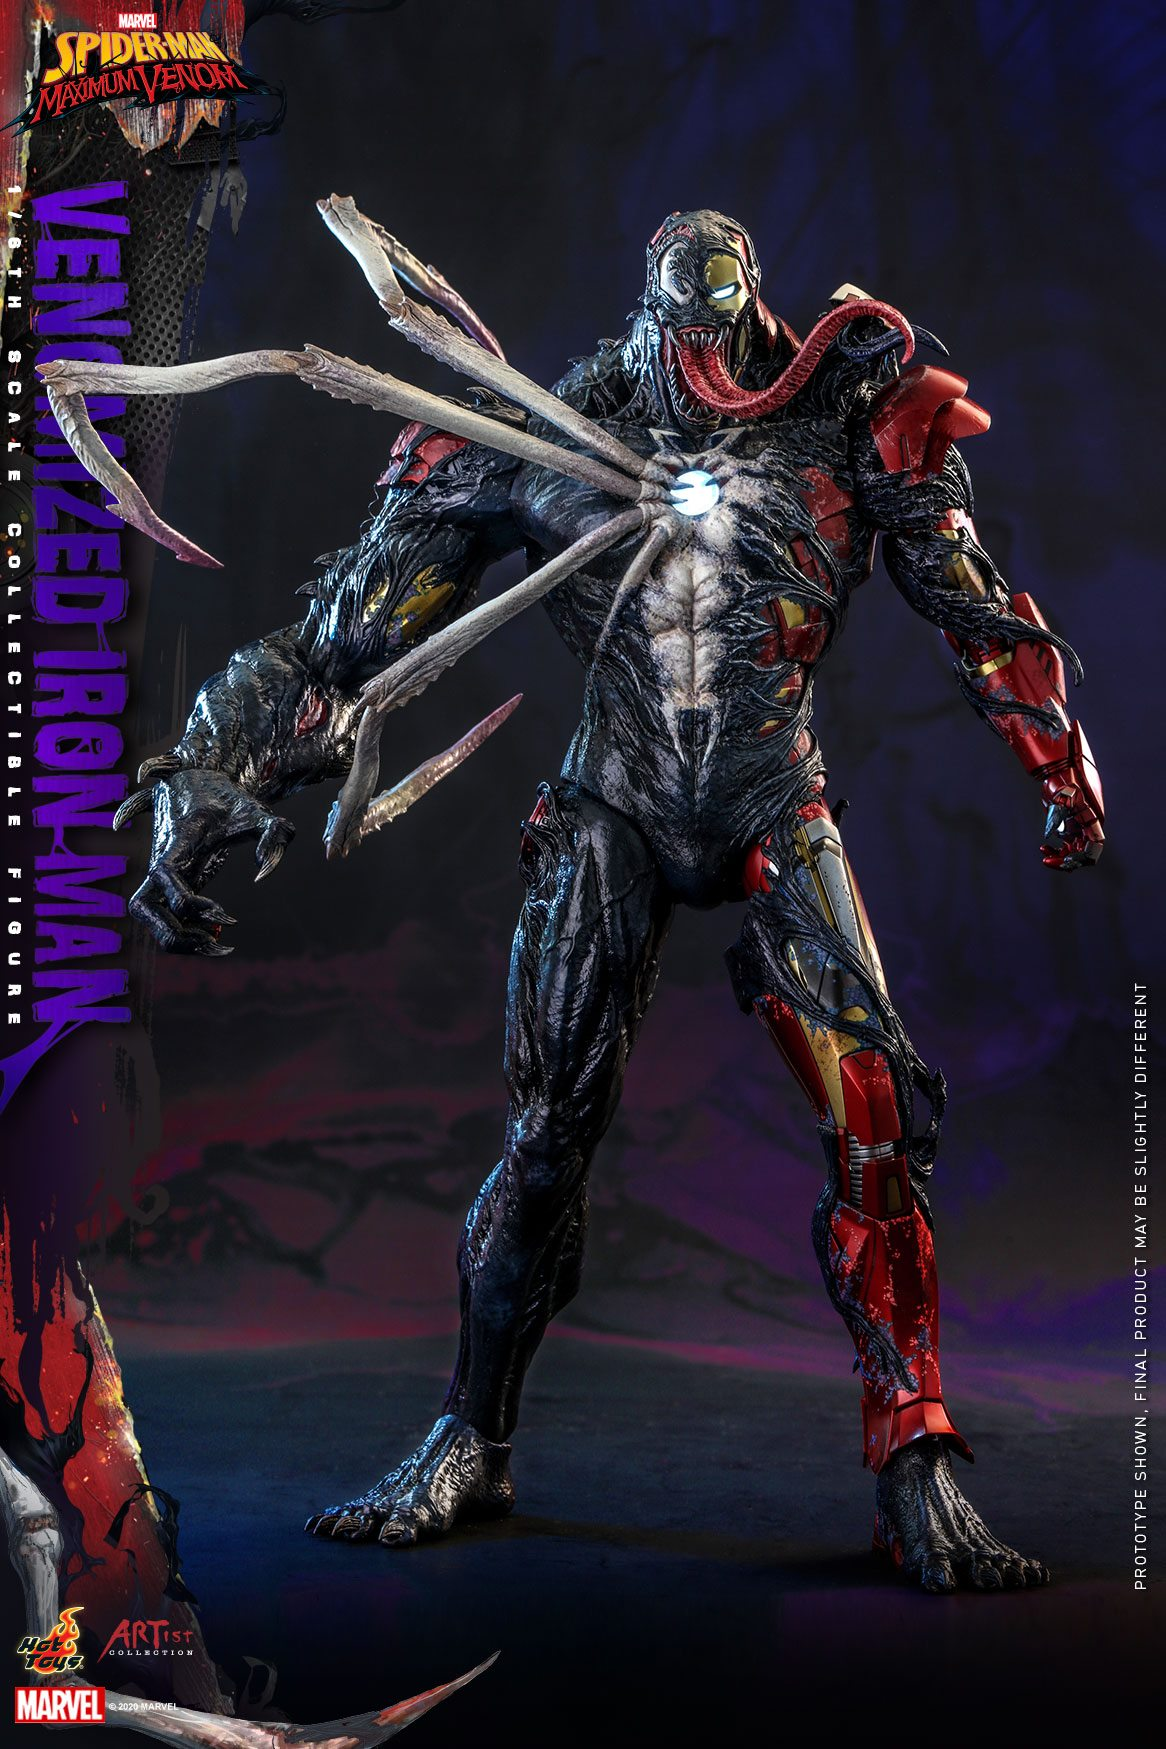 Pre-Order Hot Toys Marvel Venomized Iron Man Sixth Scale Figure